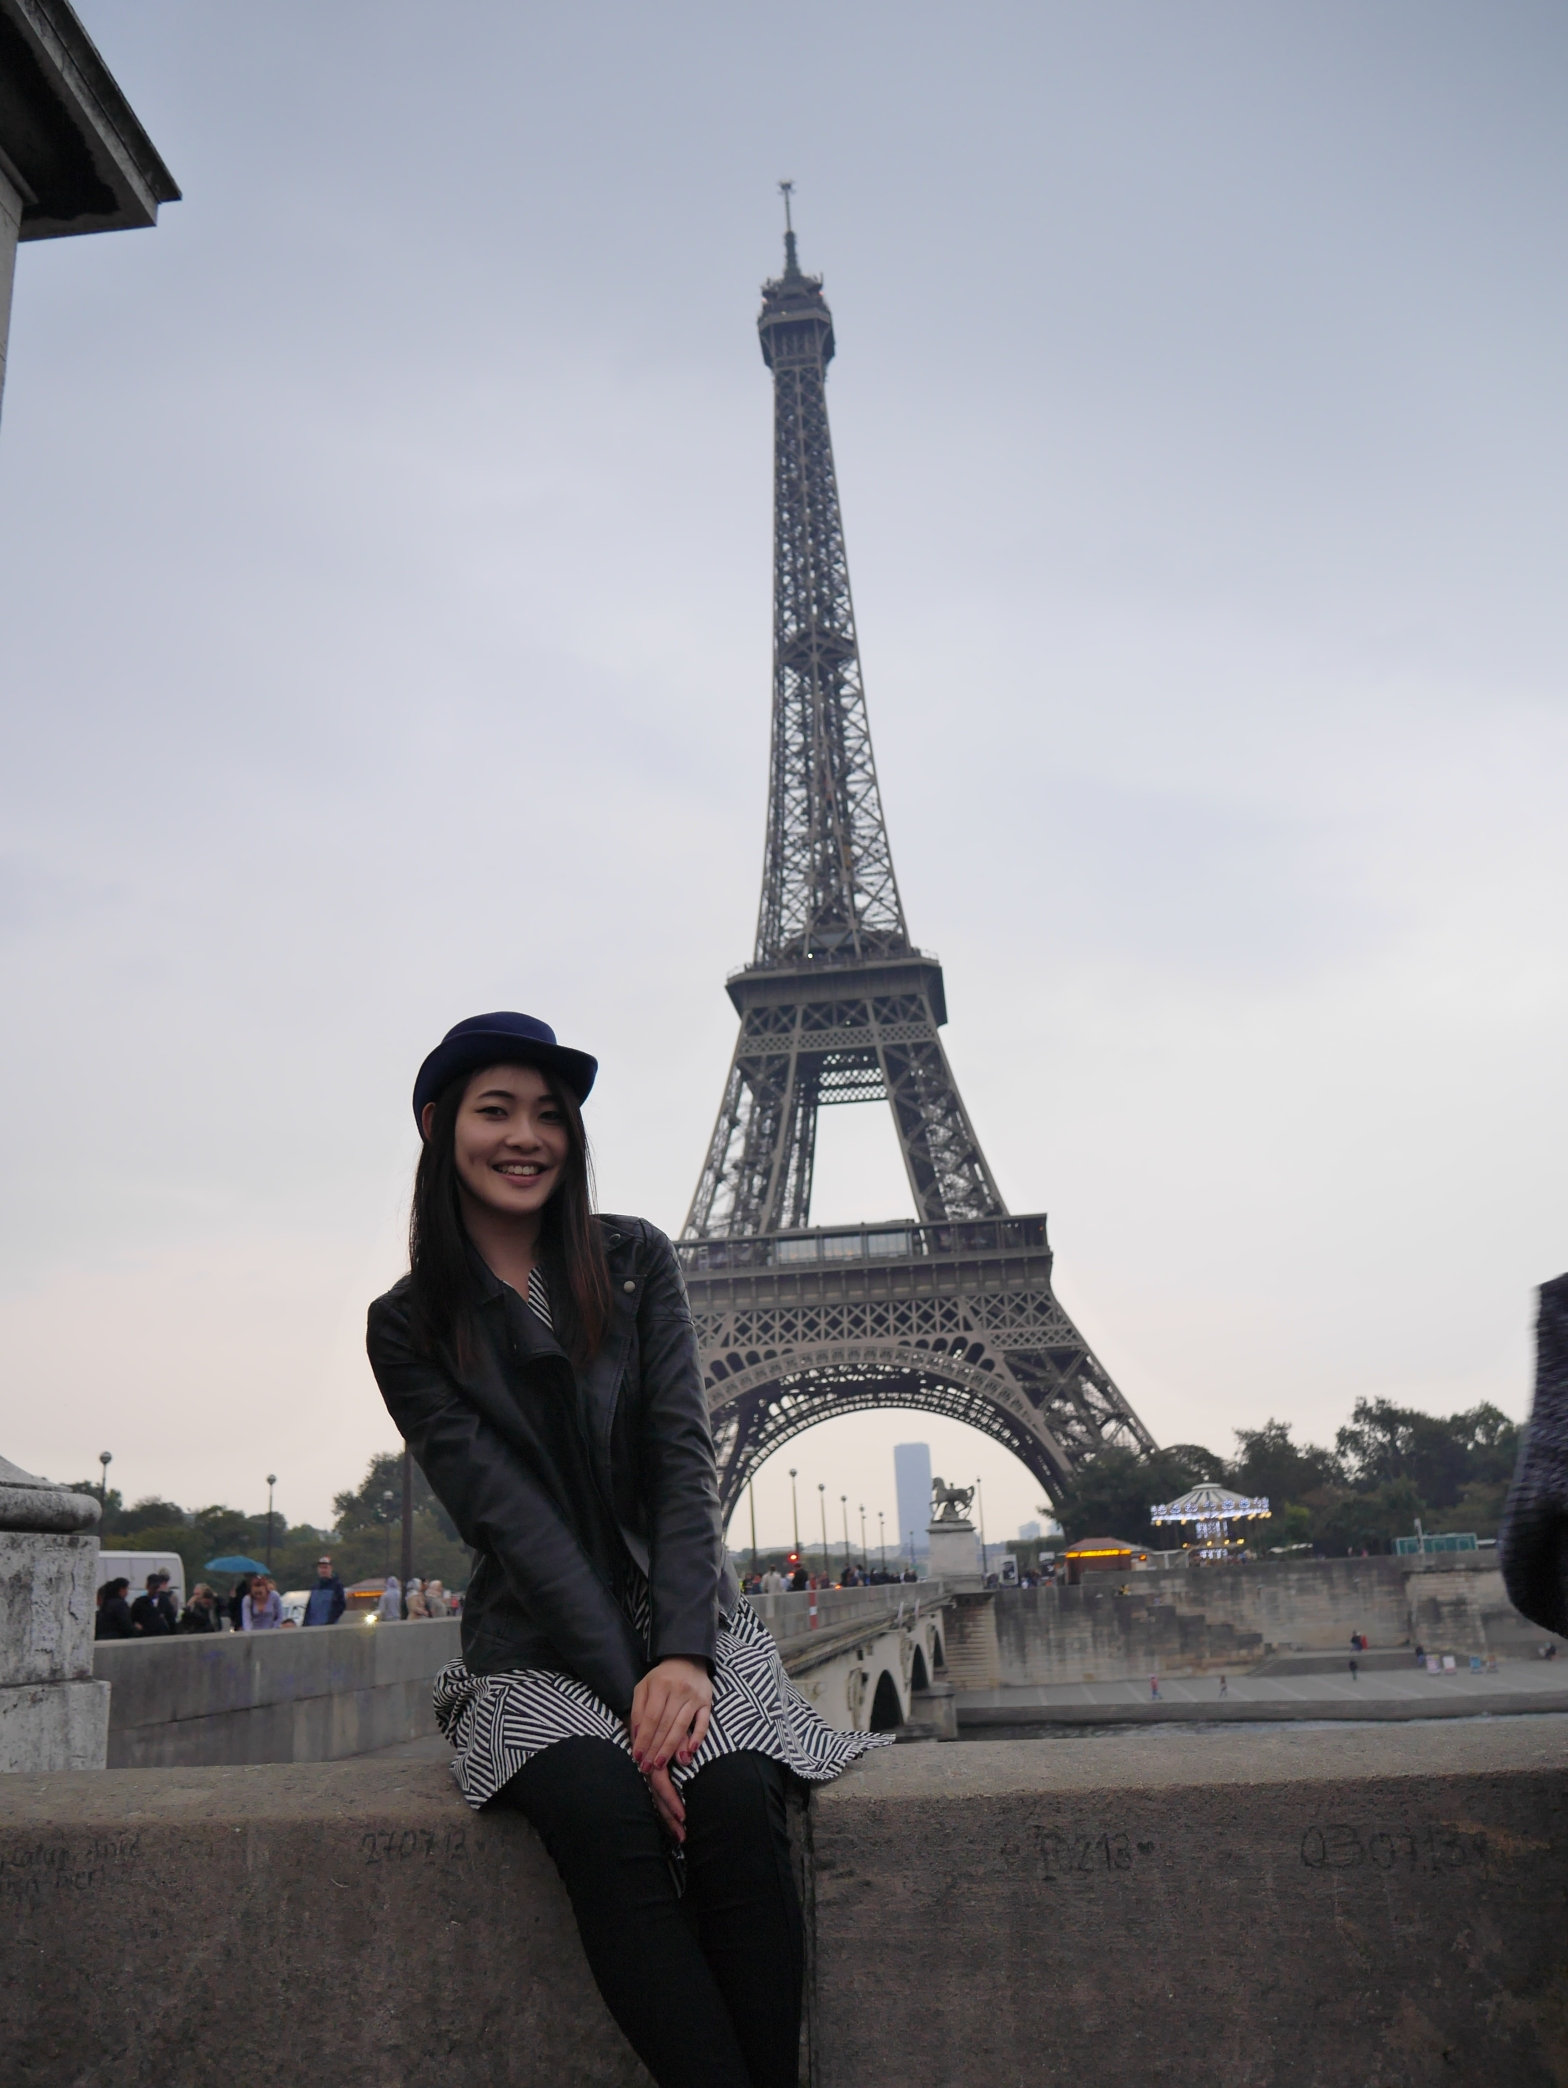 Viktoria Jean in Paris - Eiffel